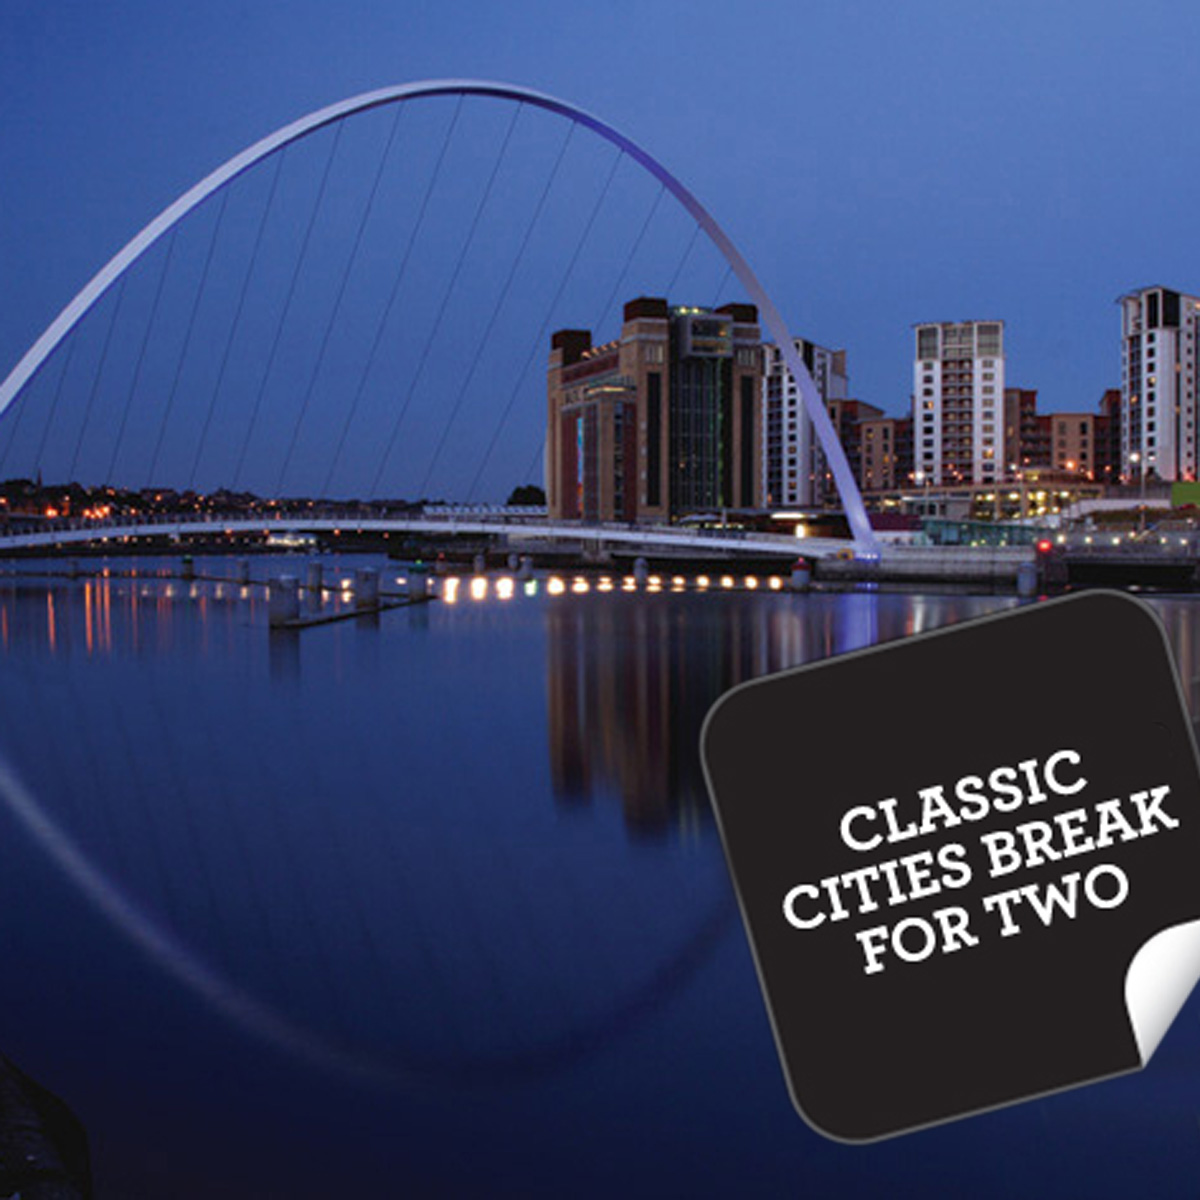 Classic Cities Break for Two